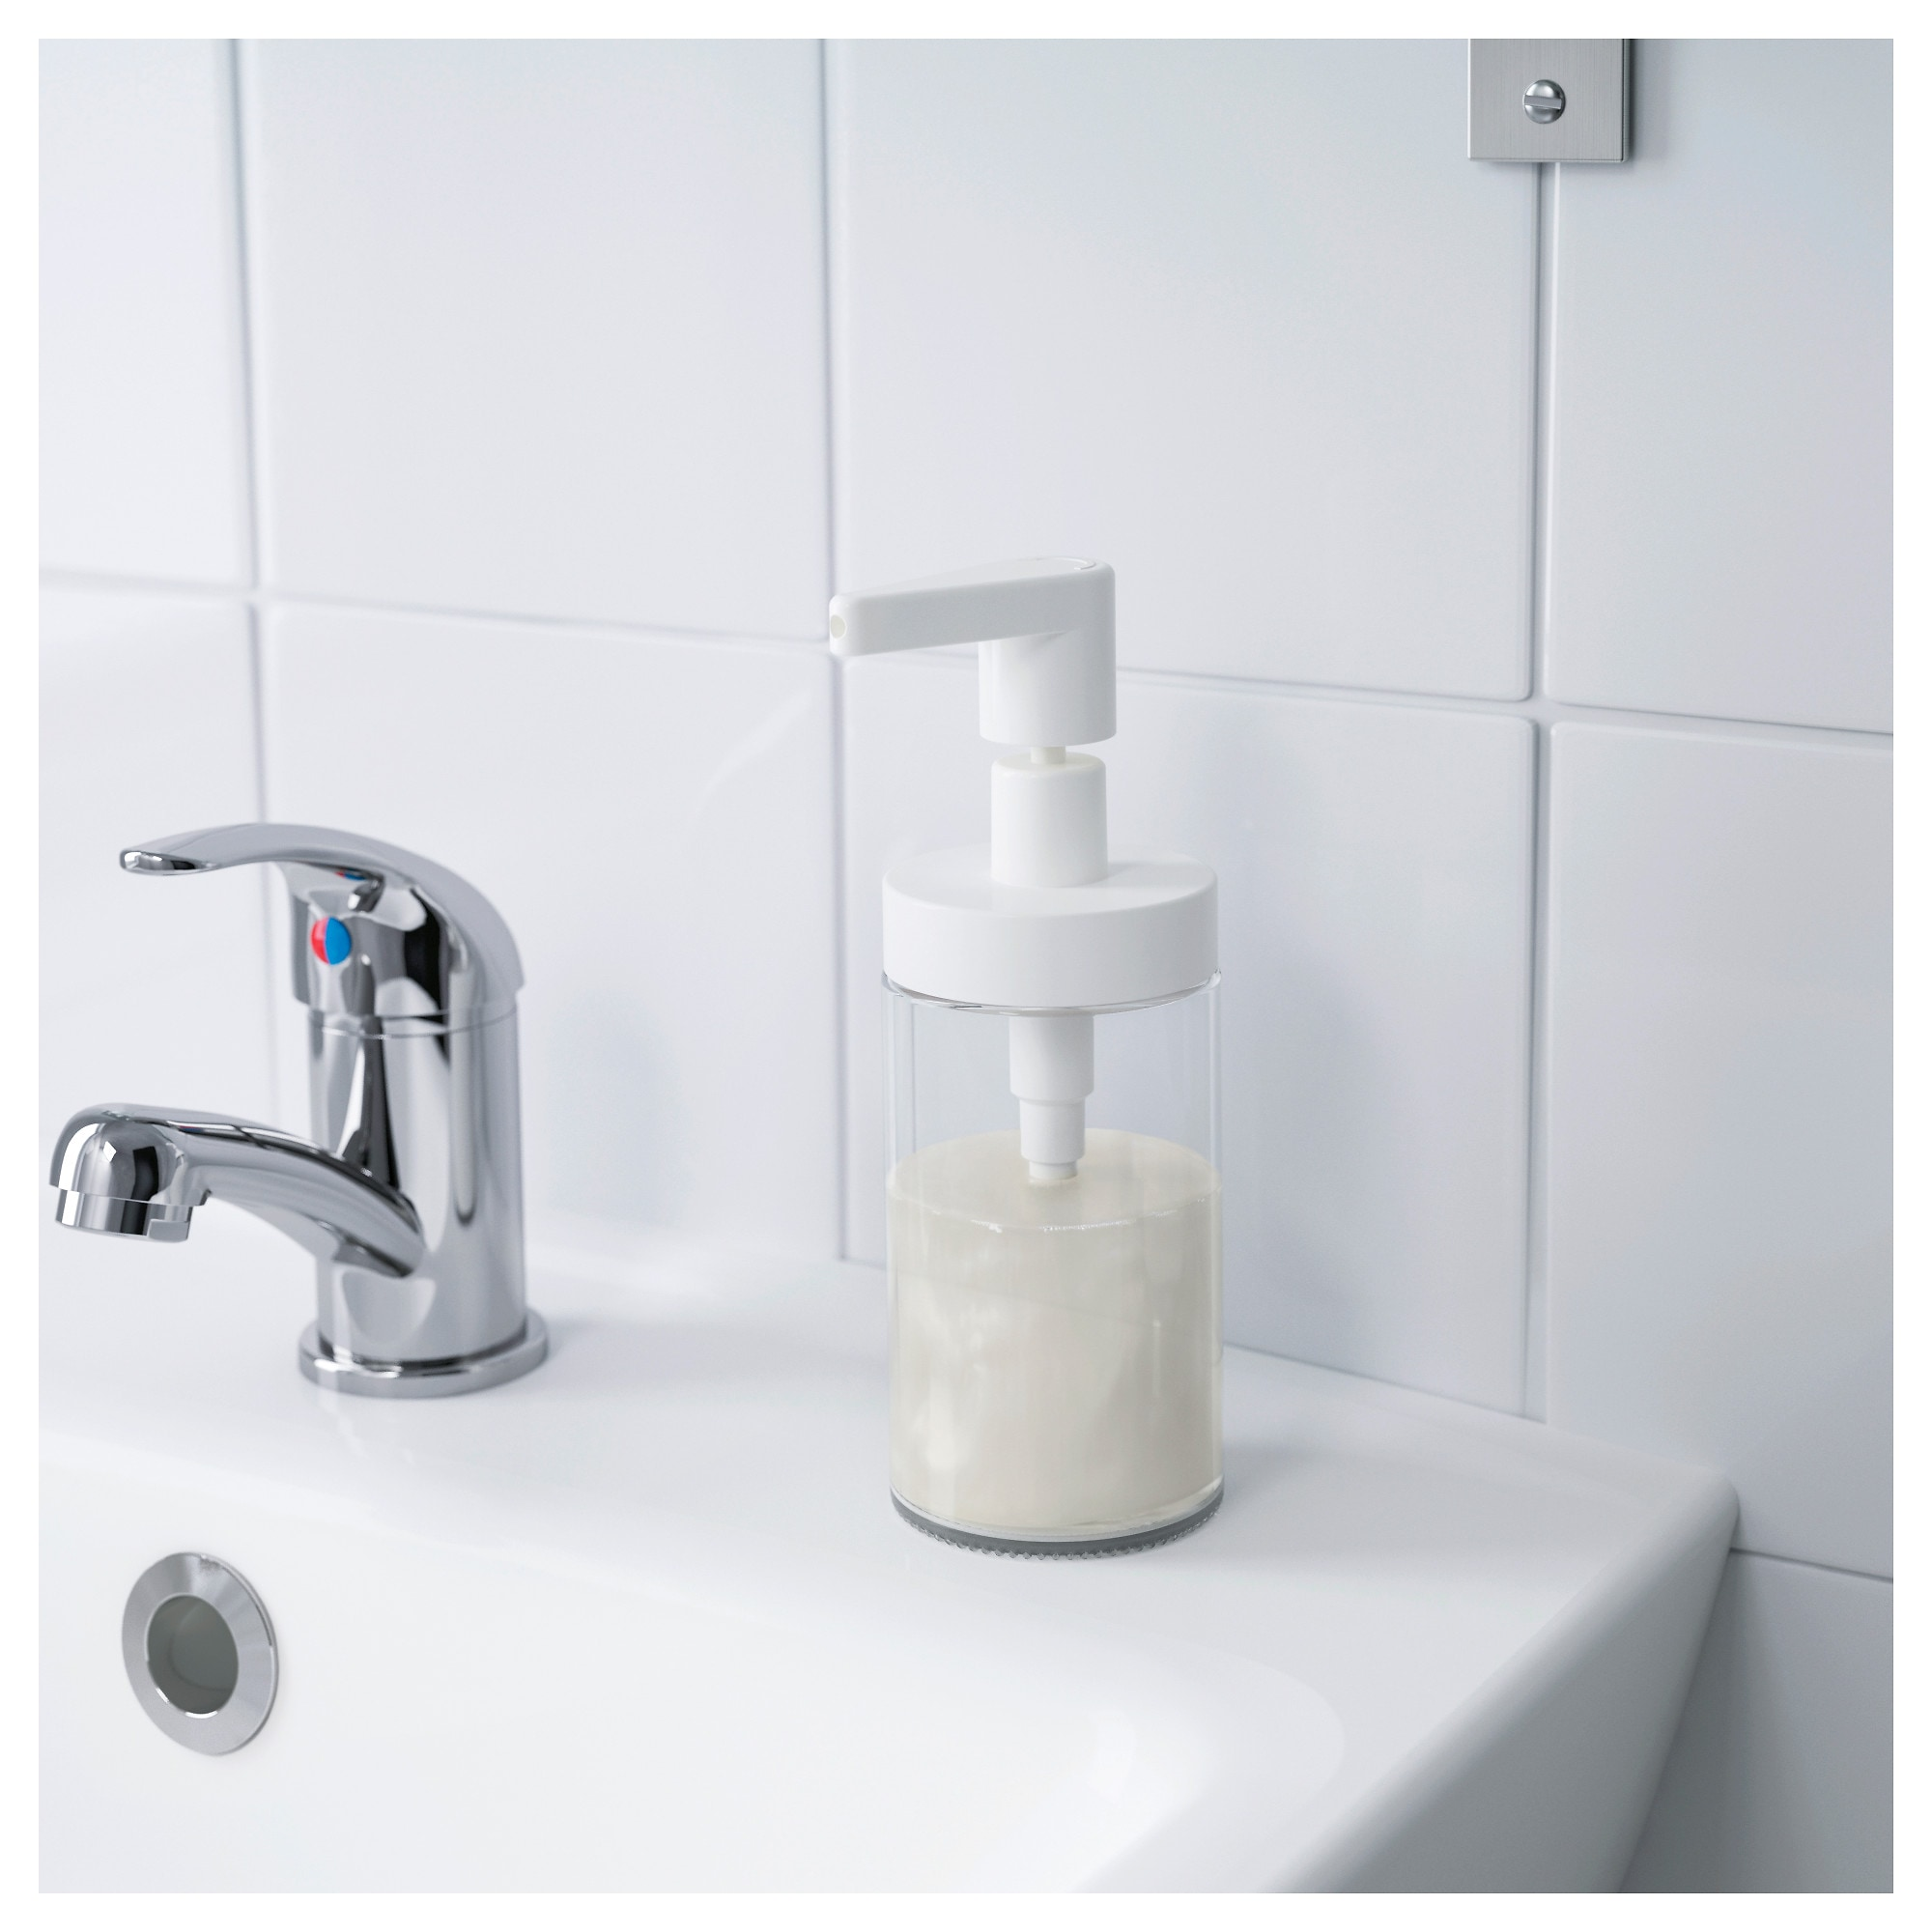 TACKAN Soap dispenser IKEA